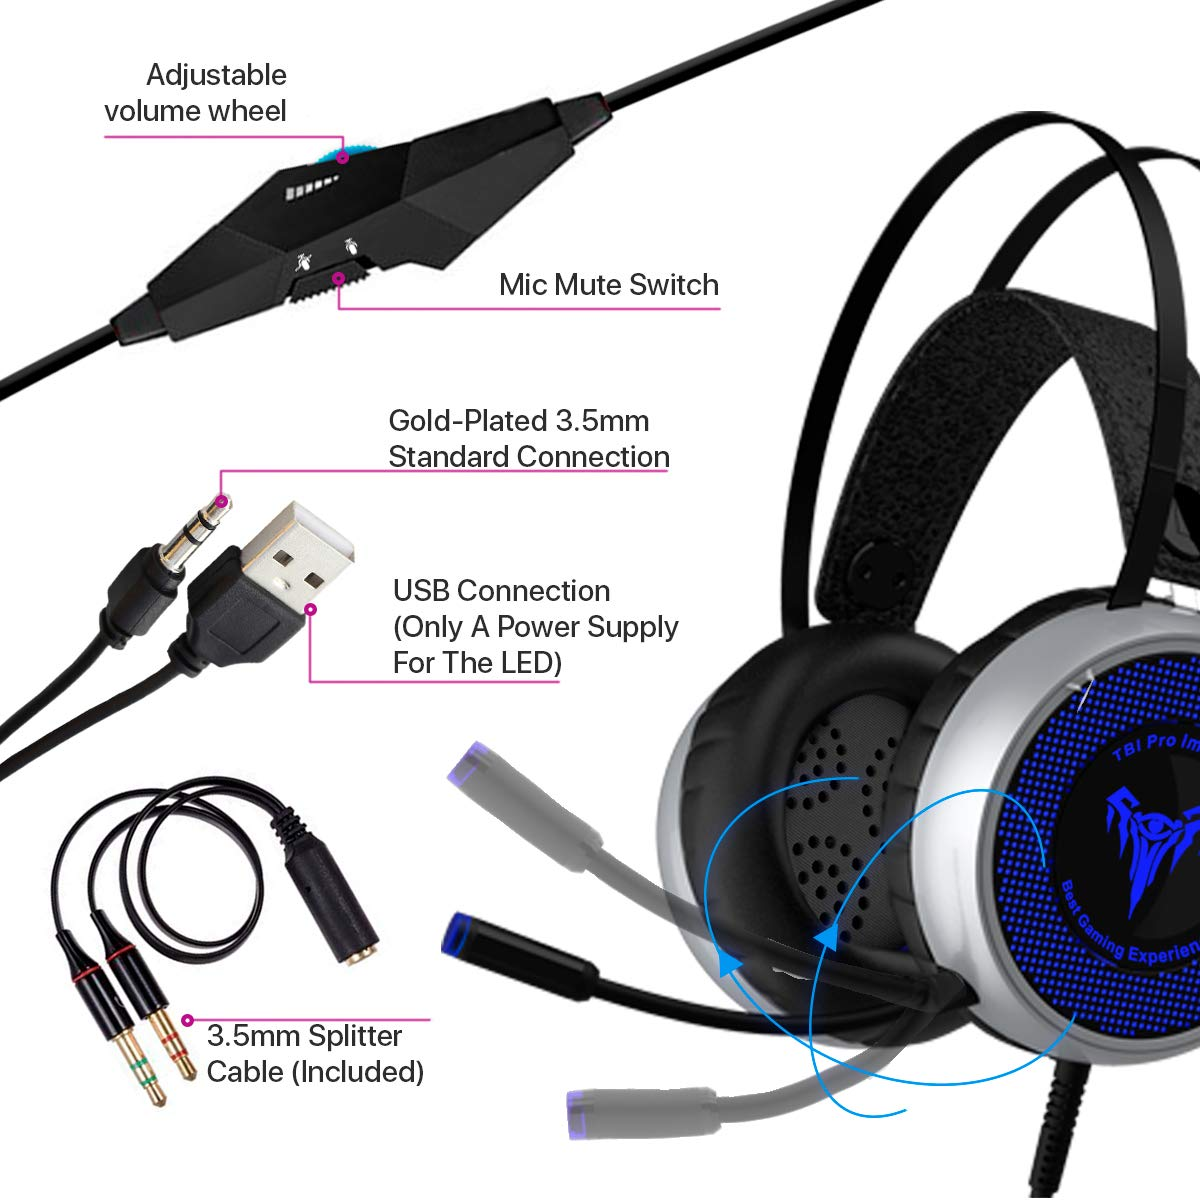 [Newest 2019] Gaming Headset for Xbox One, S, PS4, PC with LED Soft Breathing Earmuffs, Adjustable Microphone, Comfortable Mute & Volume Control, 3.5mm Adapter for Laptop, PS3, Nintendo by TBI Pro (Image #7)